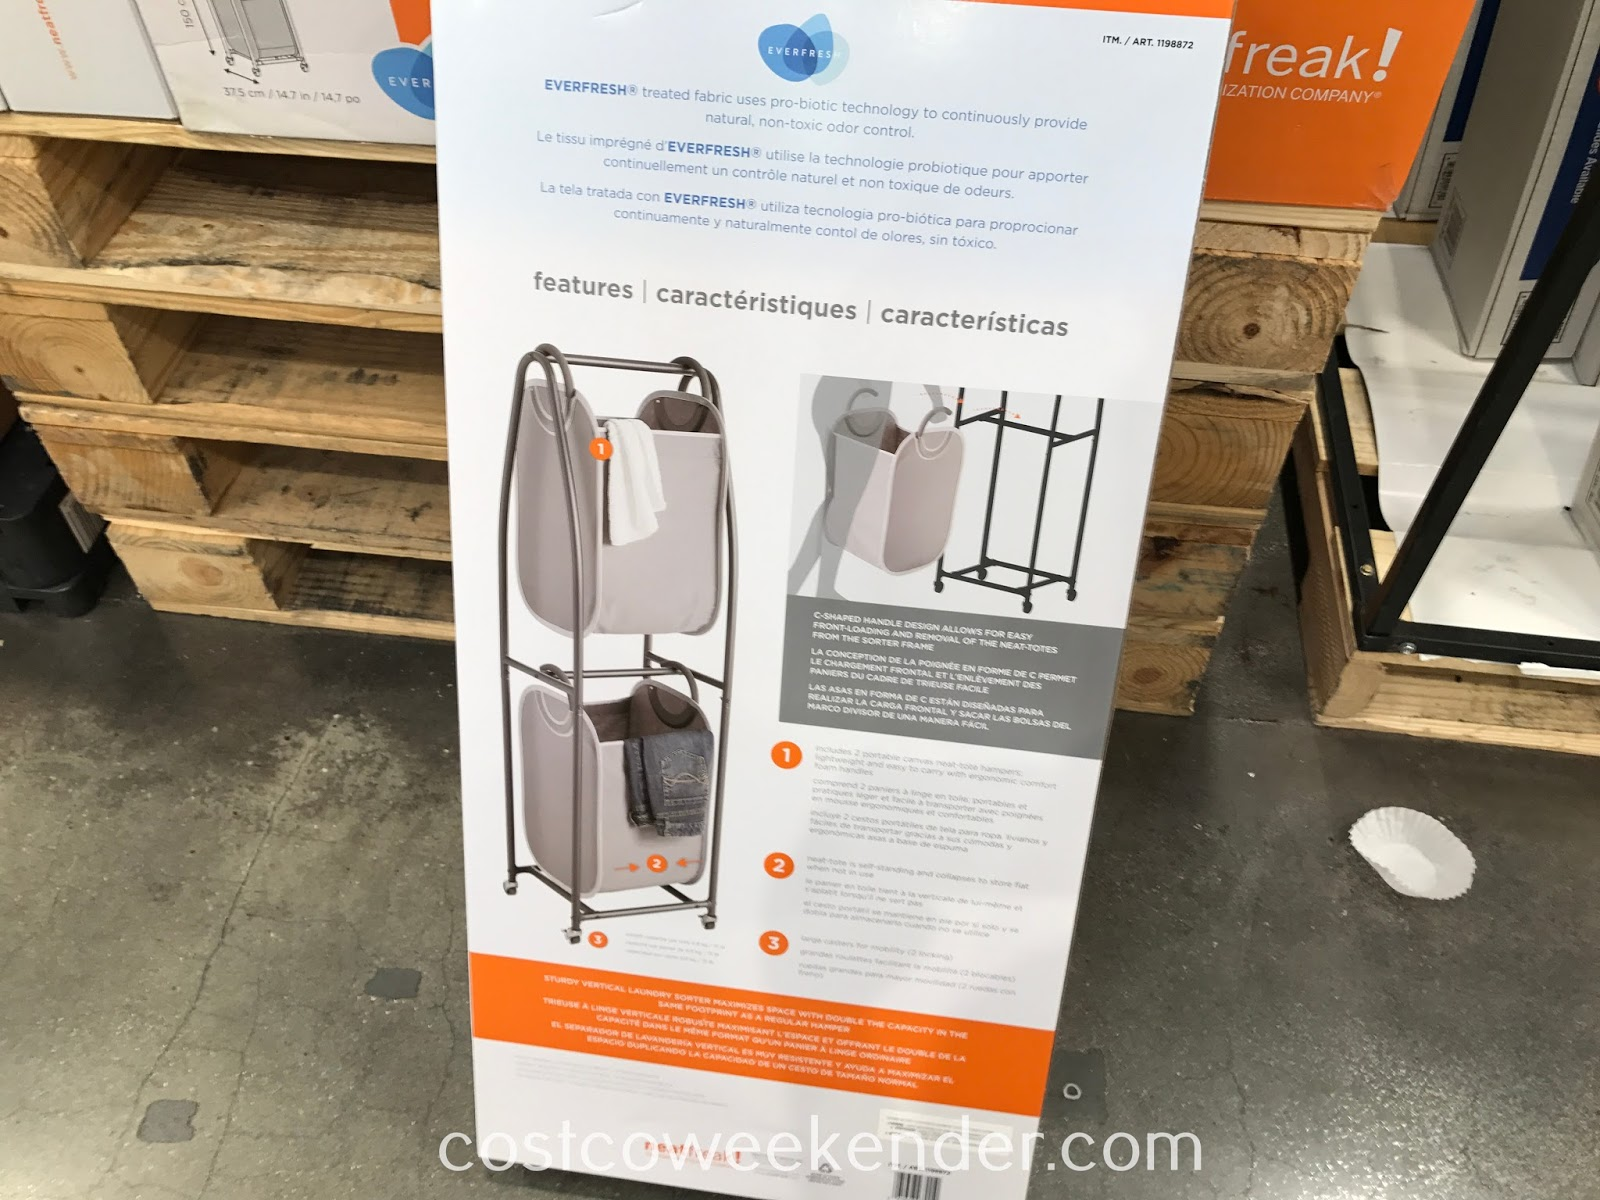 Costco 1198872 - NeatFreak Rolling Vertical Laundry Sorter: an easy storage solution for everyday problems and dirty clothes